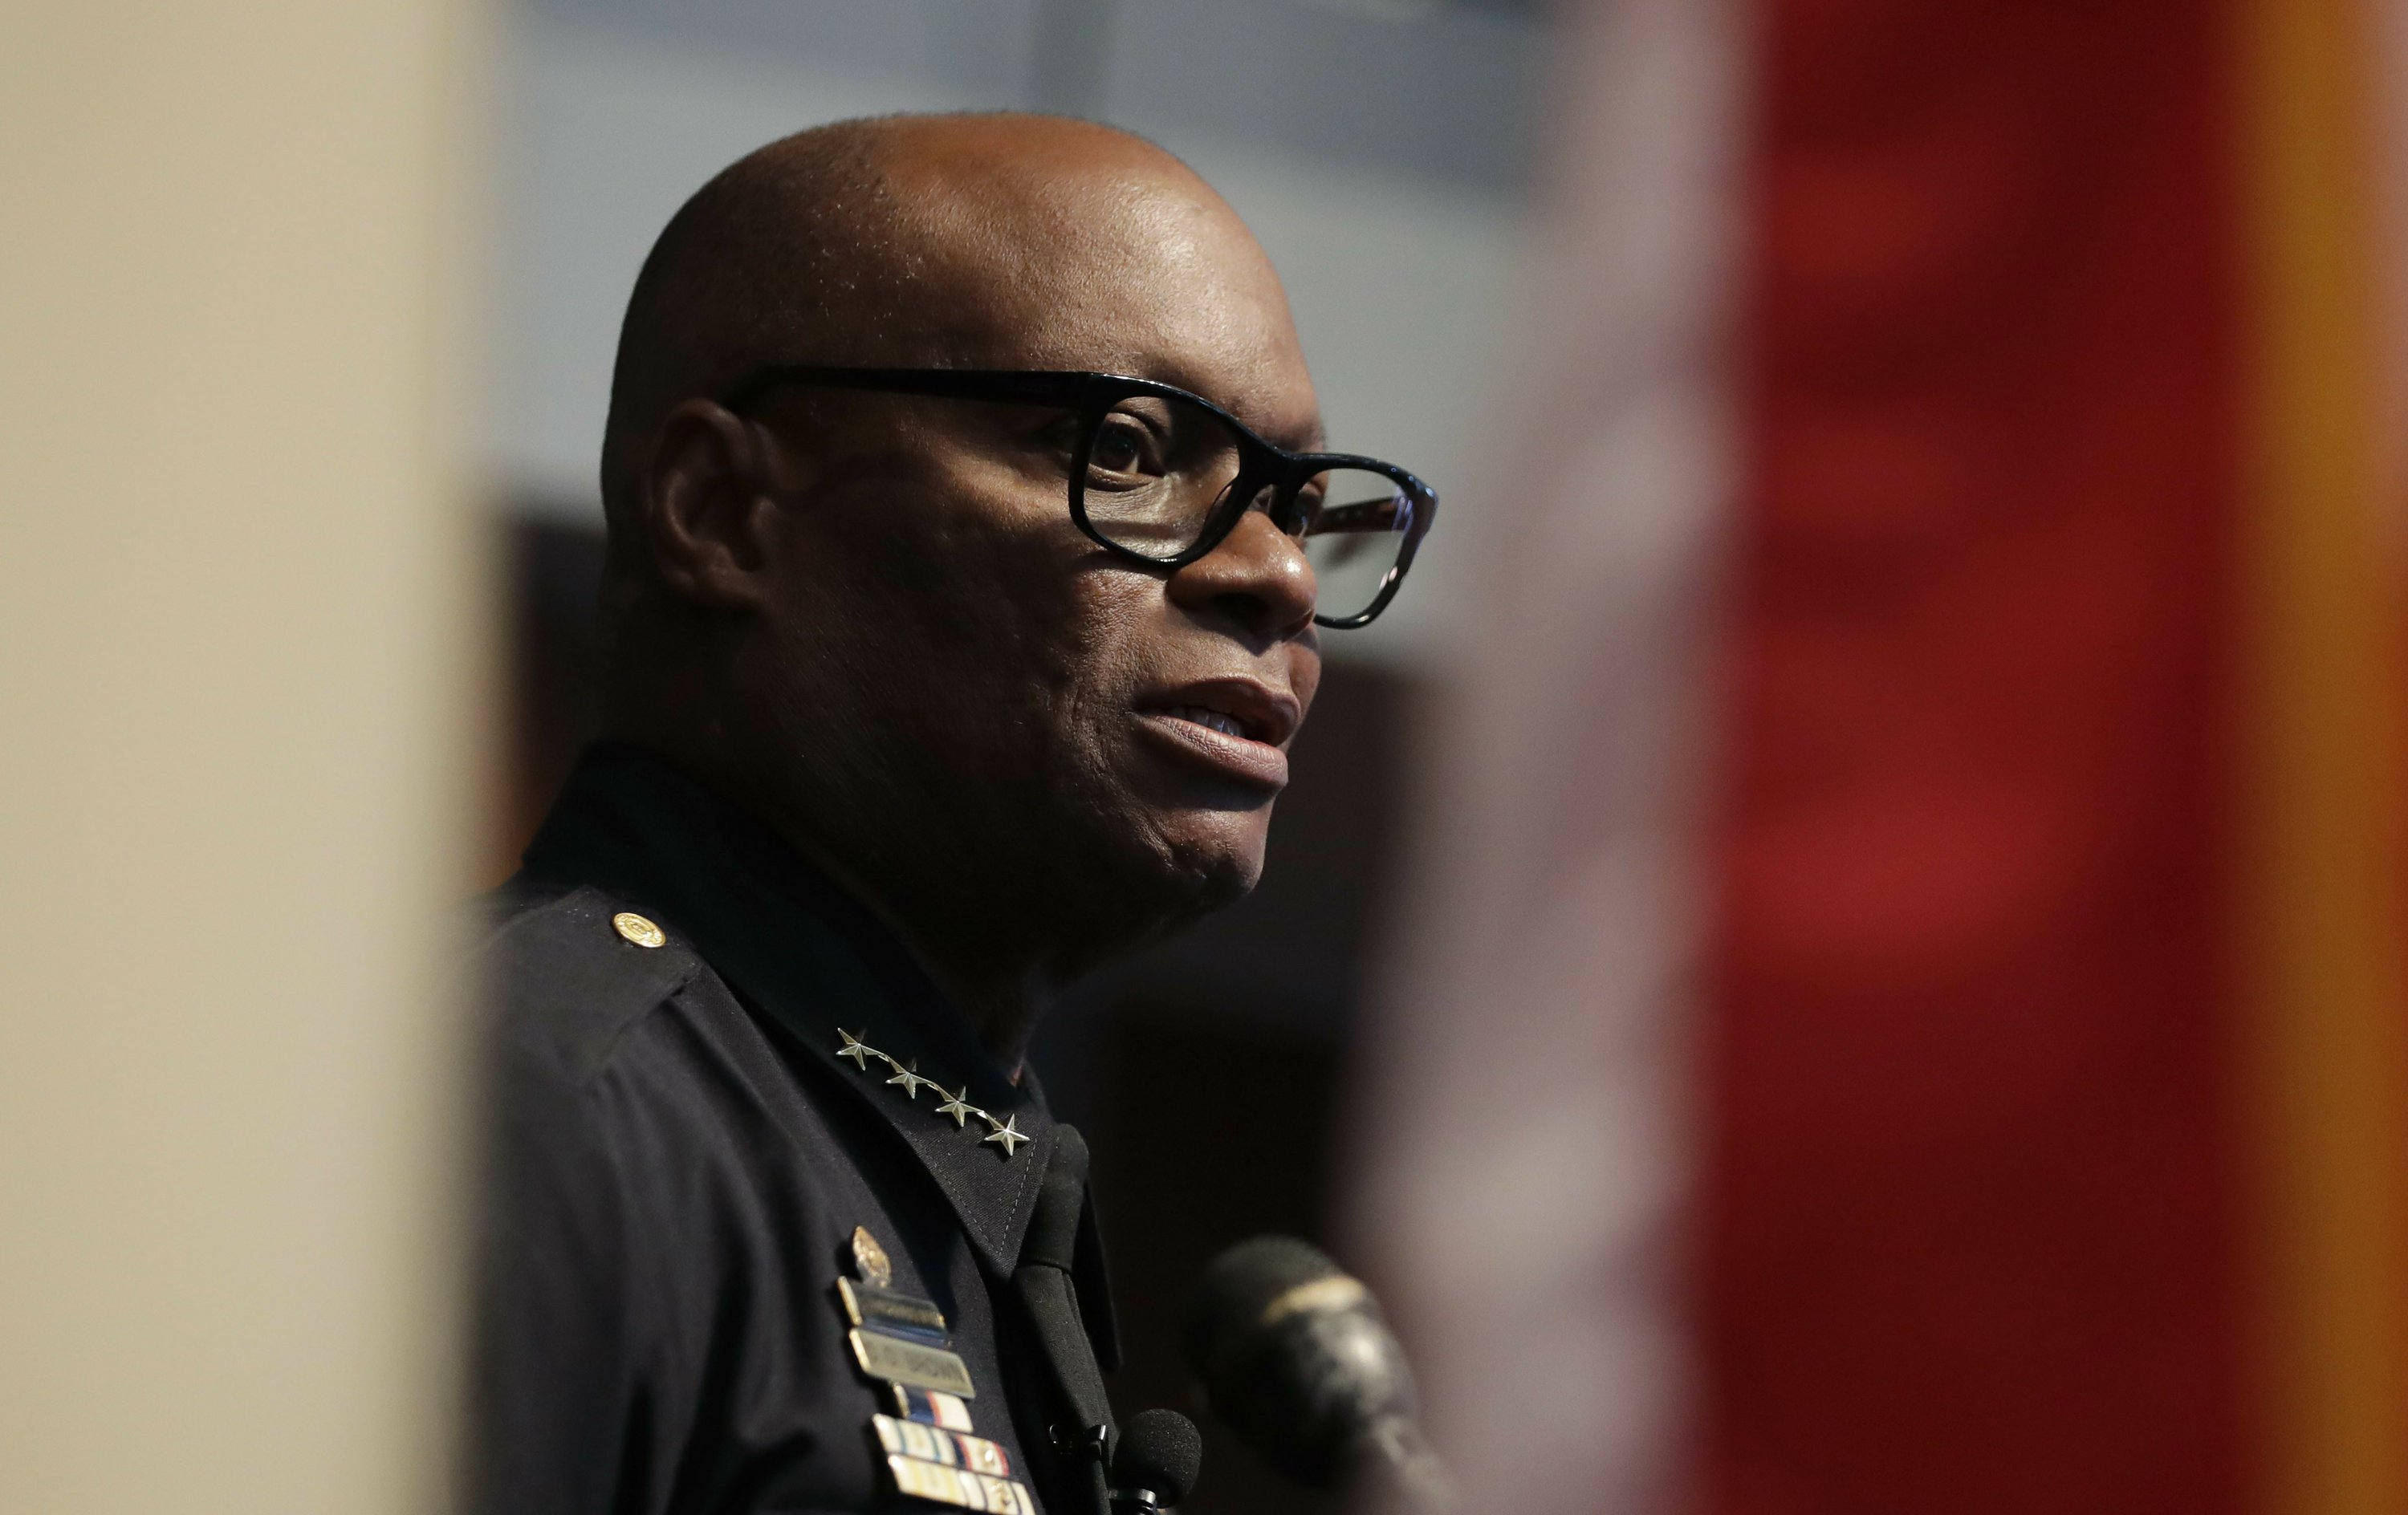 Dallas police had taken steps to mend rift with minorities